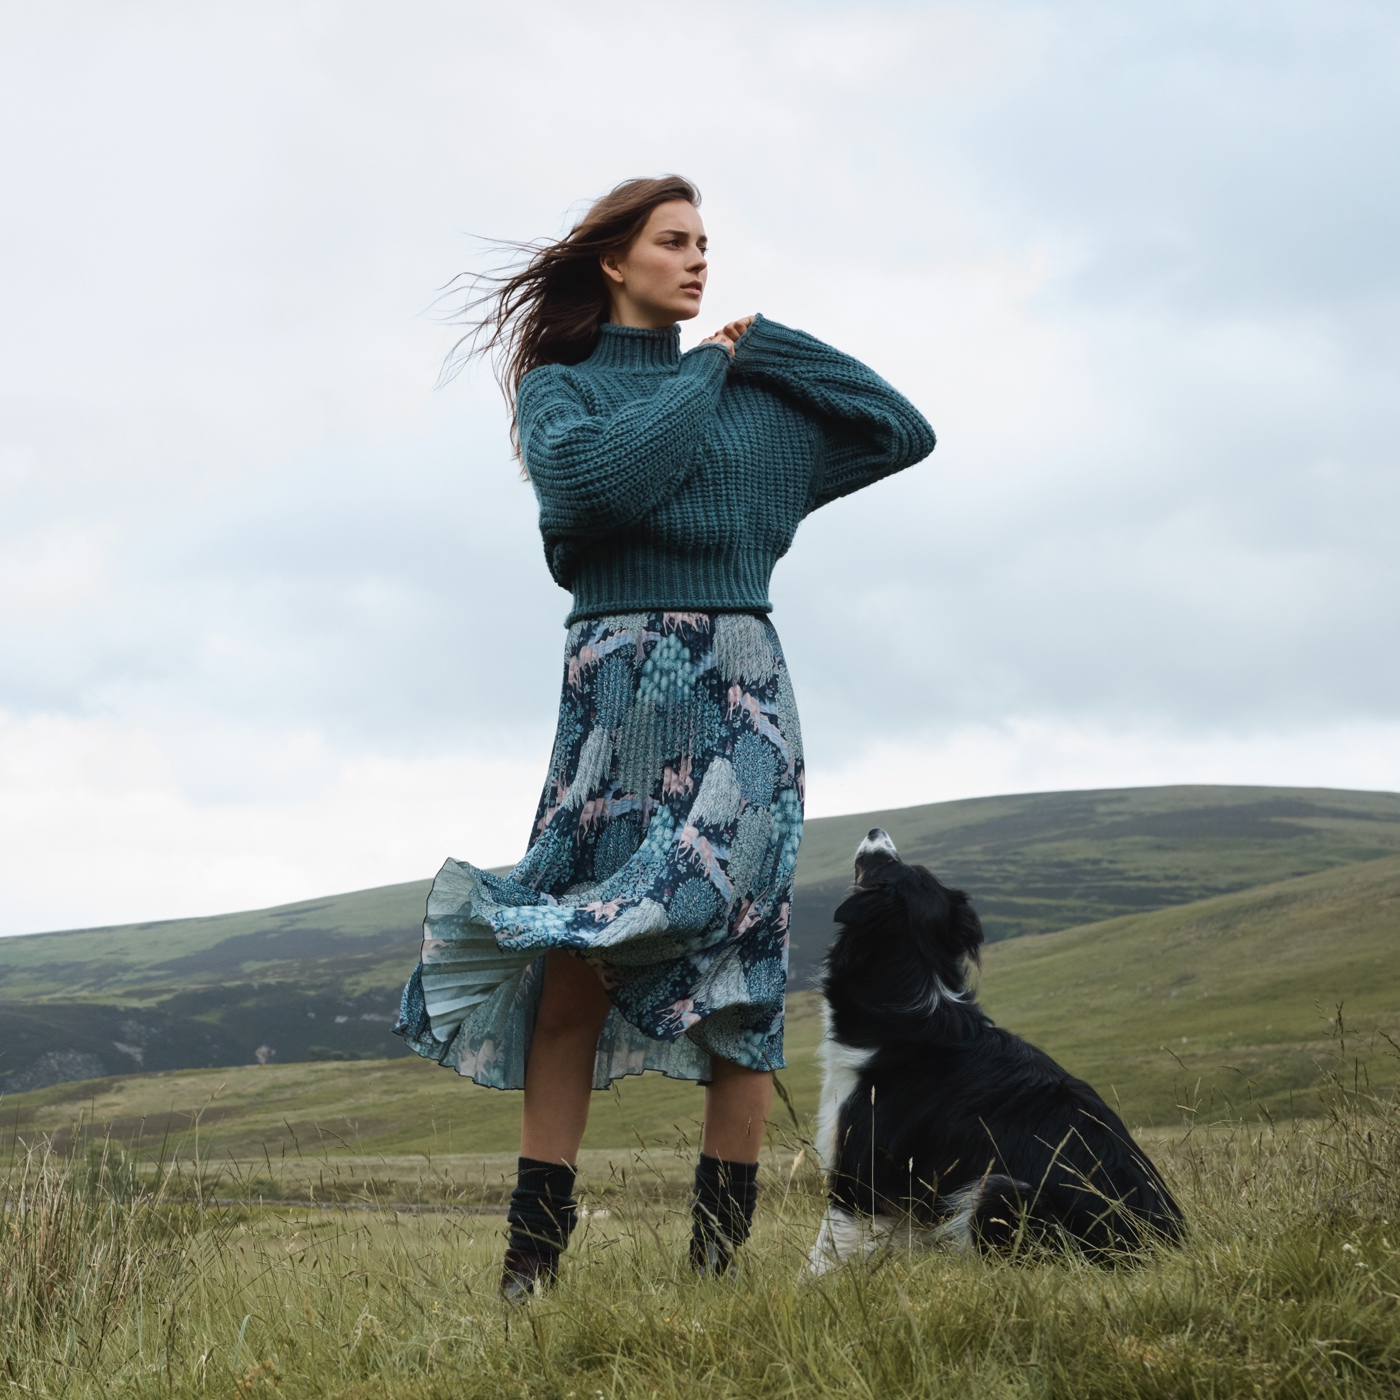 All About the H&M x Morris & Co Autumn Collection